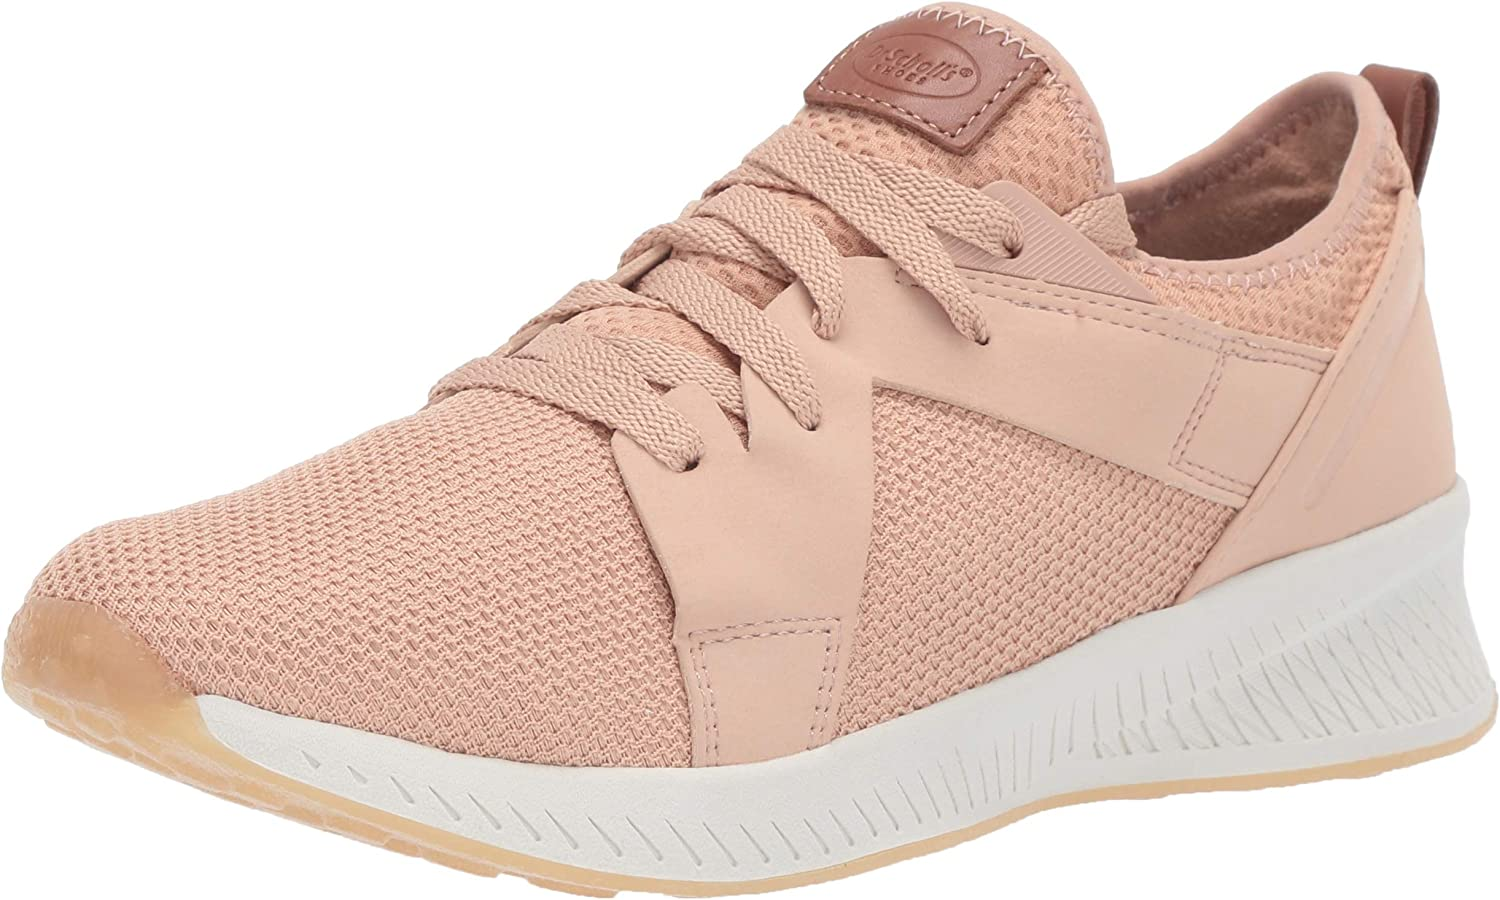 Dr. Scholl's shoes Womens Right on Sneaker